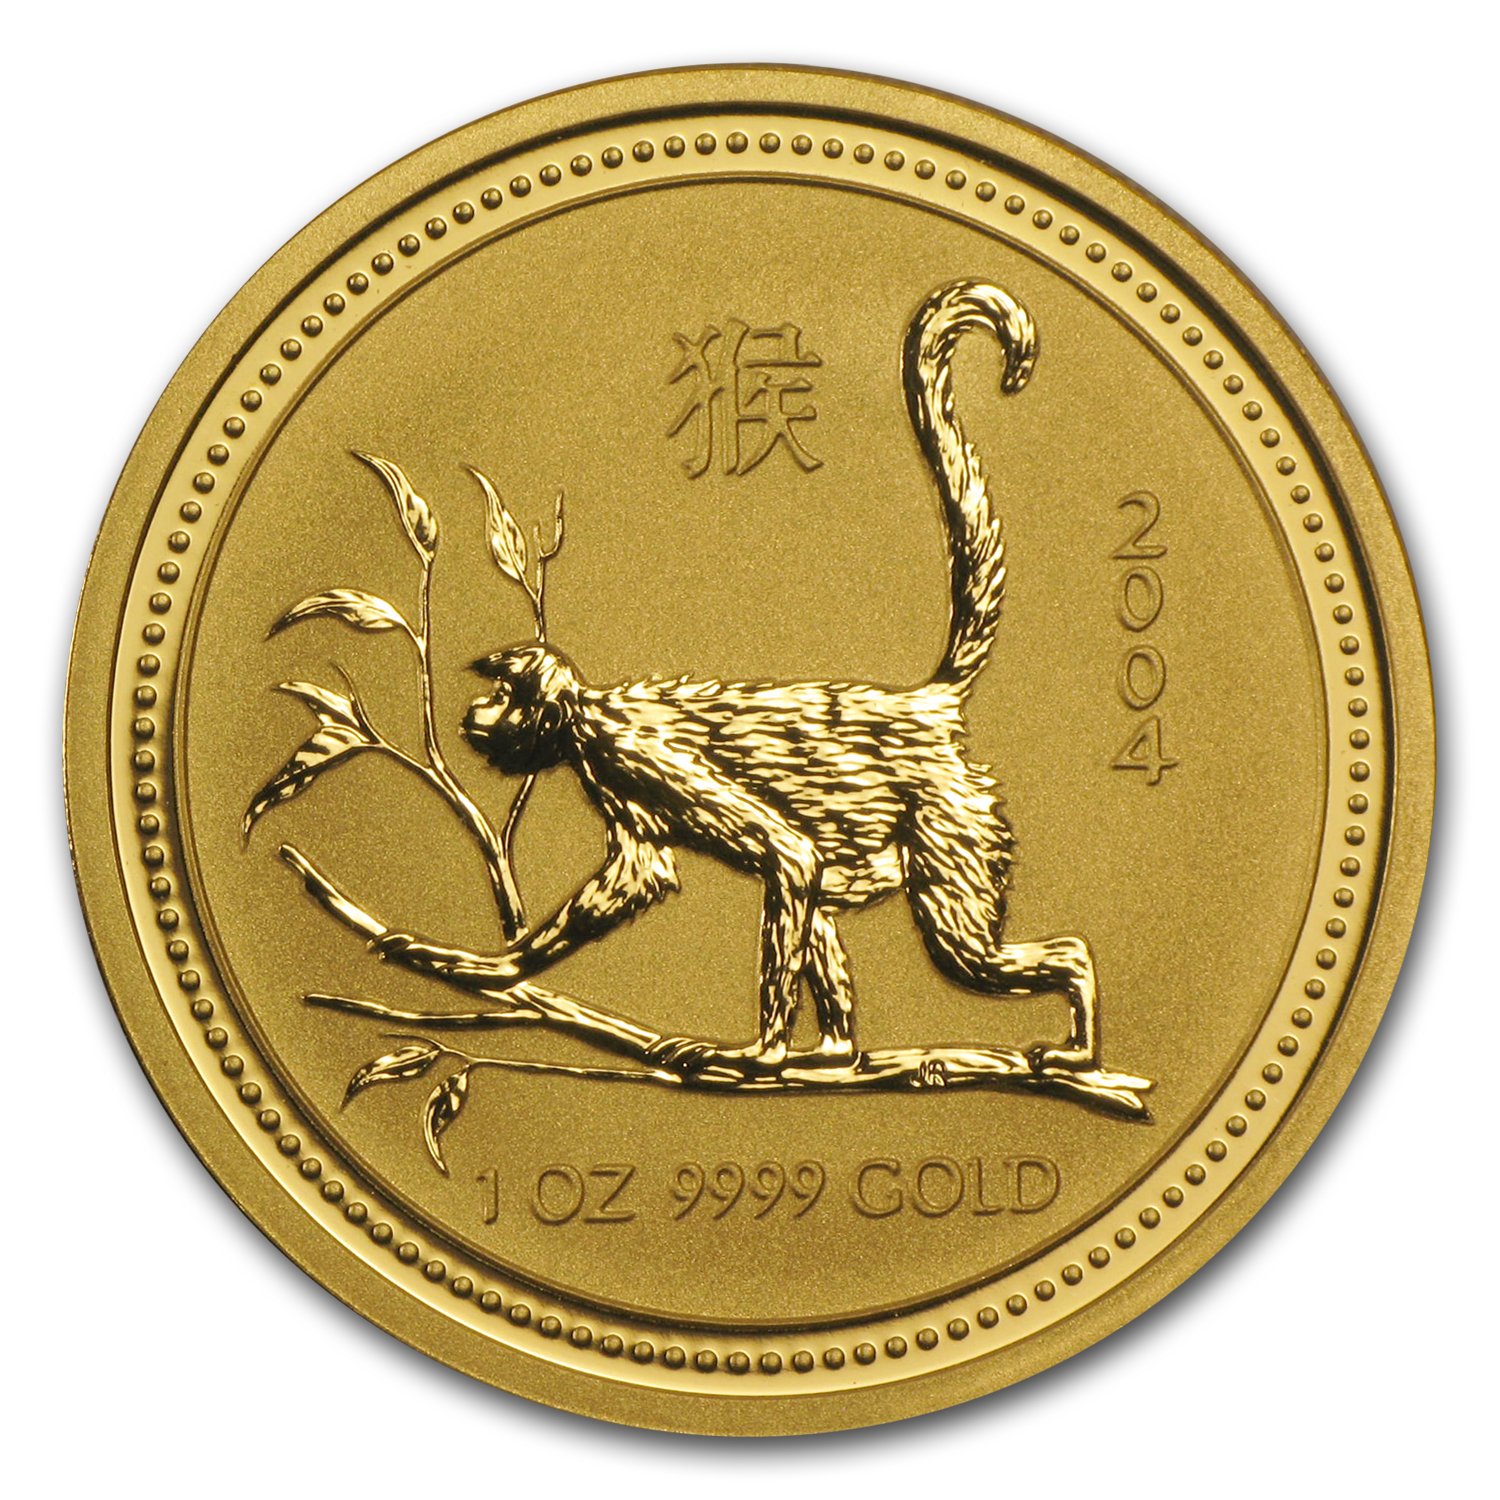 2004 1 oz Gold Year of the Monkey Lunar Coin (Series I)